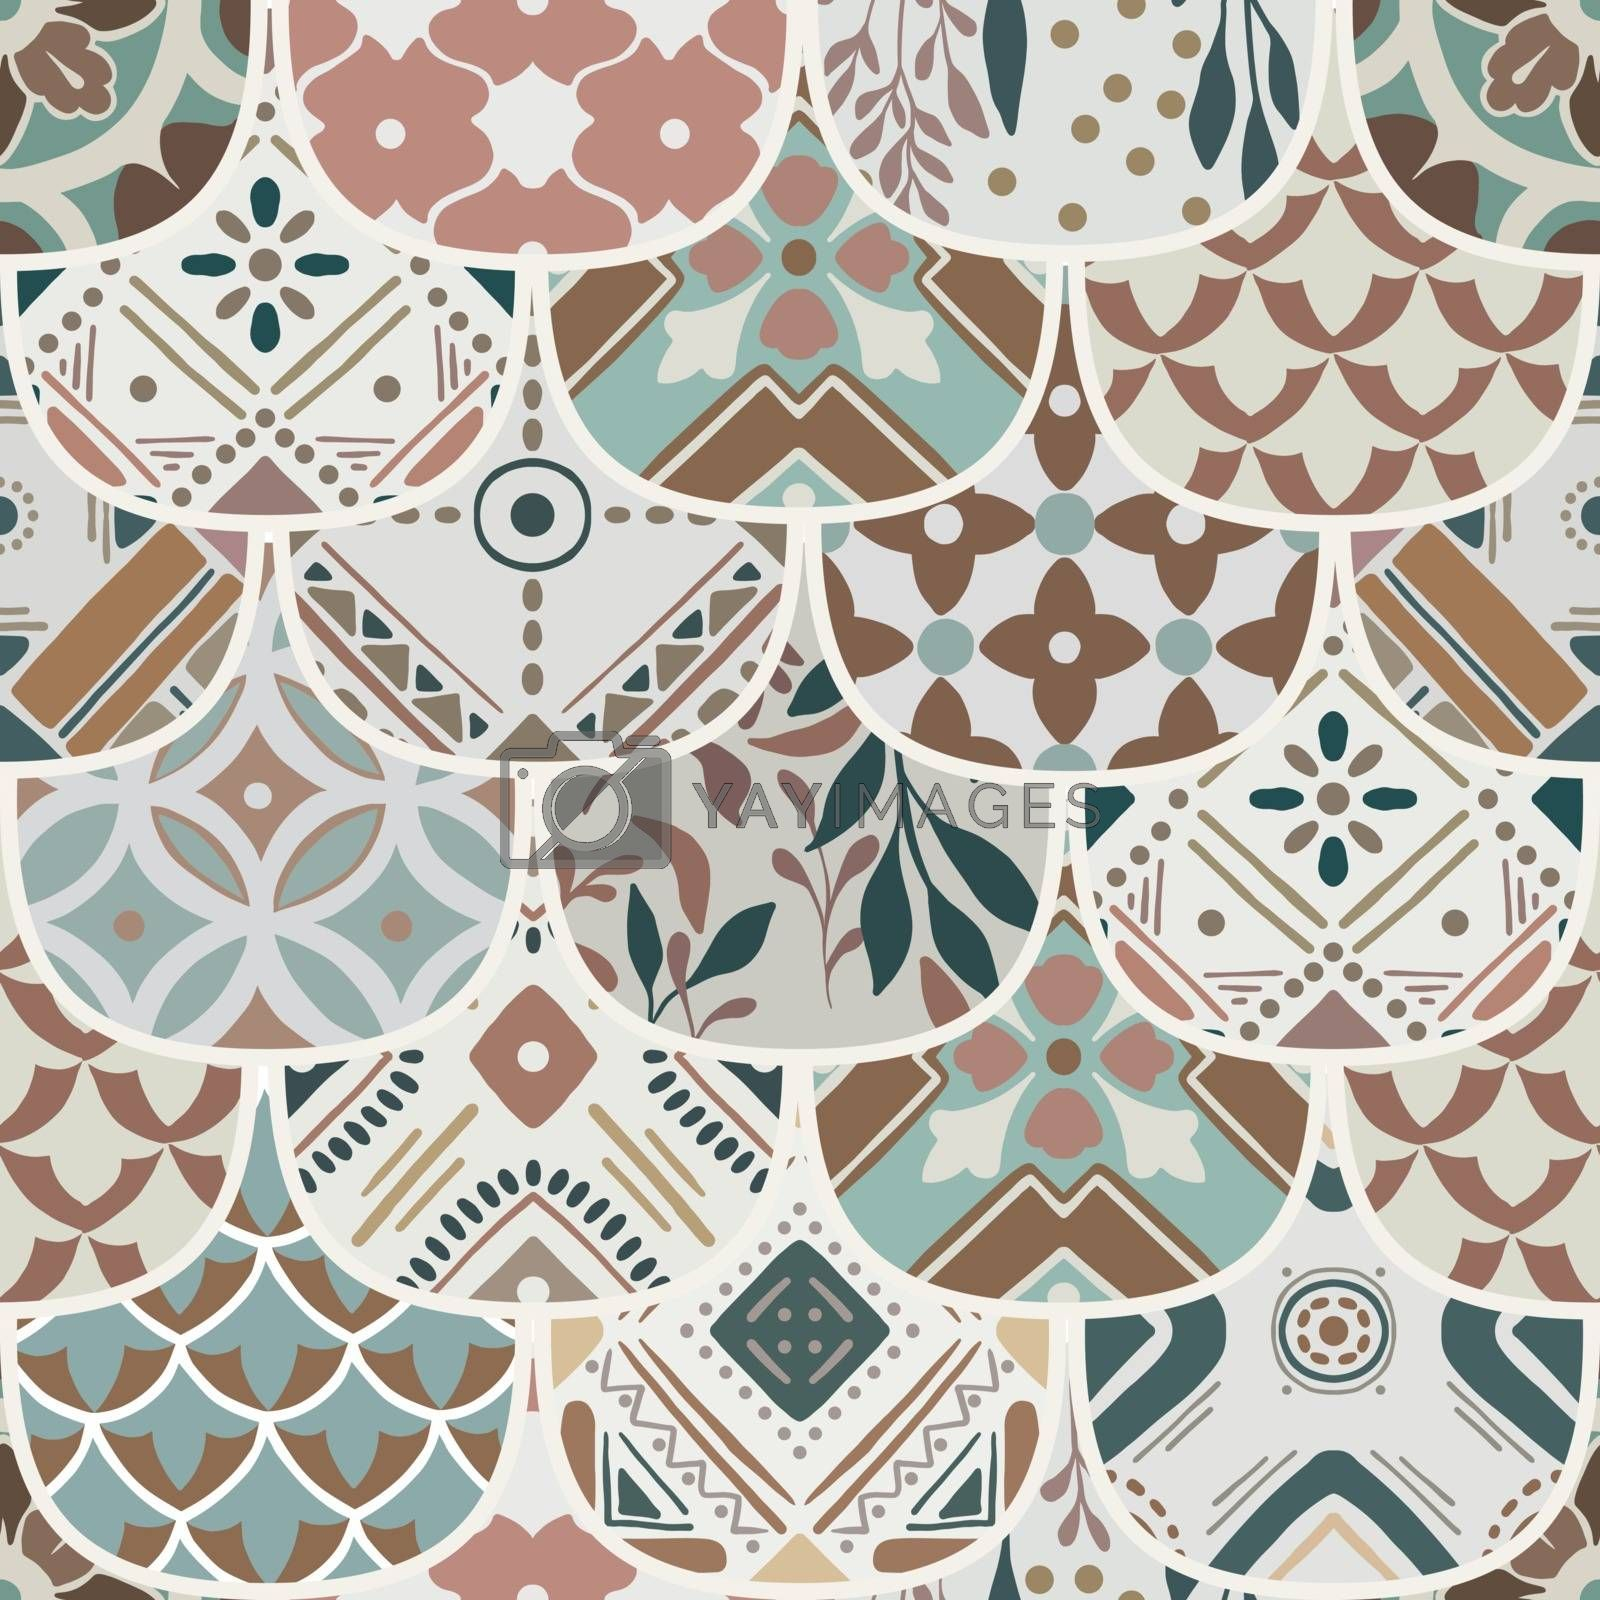 Luxury oriental tile seamless pattern in style of colorful floral patchwork boho chic with mandala in ellipse design elements. Flower vector ornament background with eastern motif